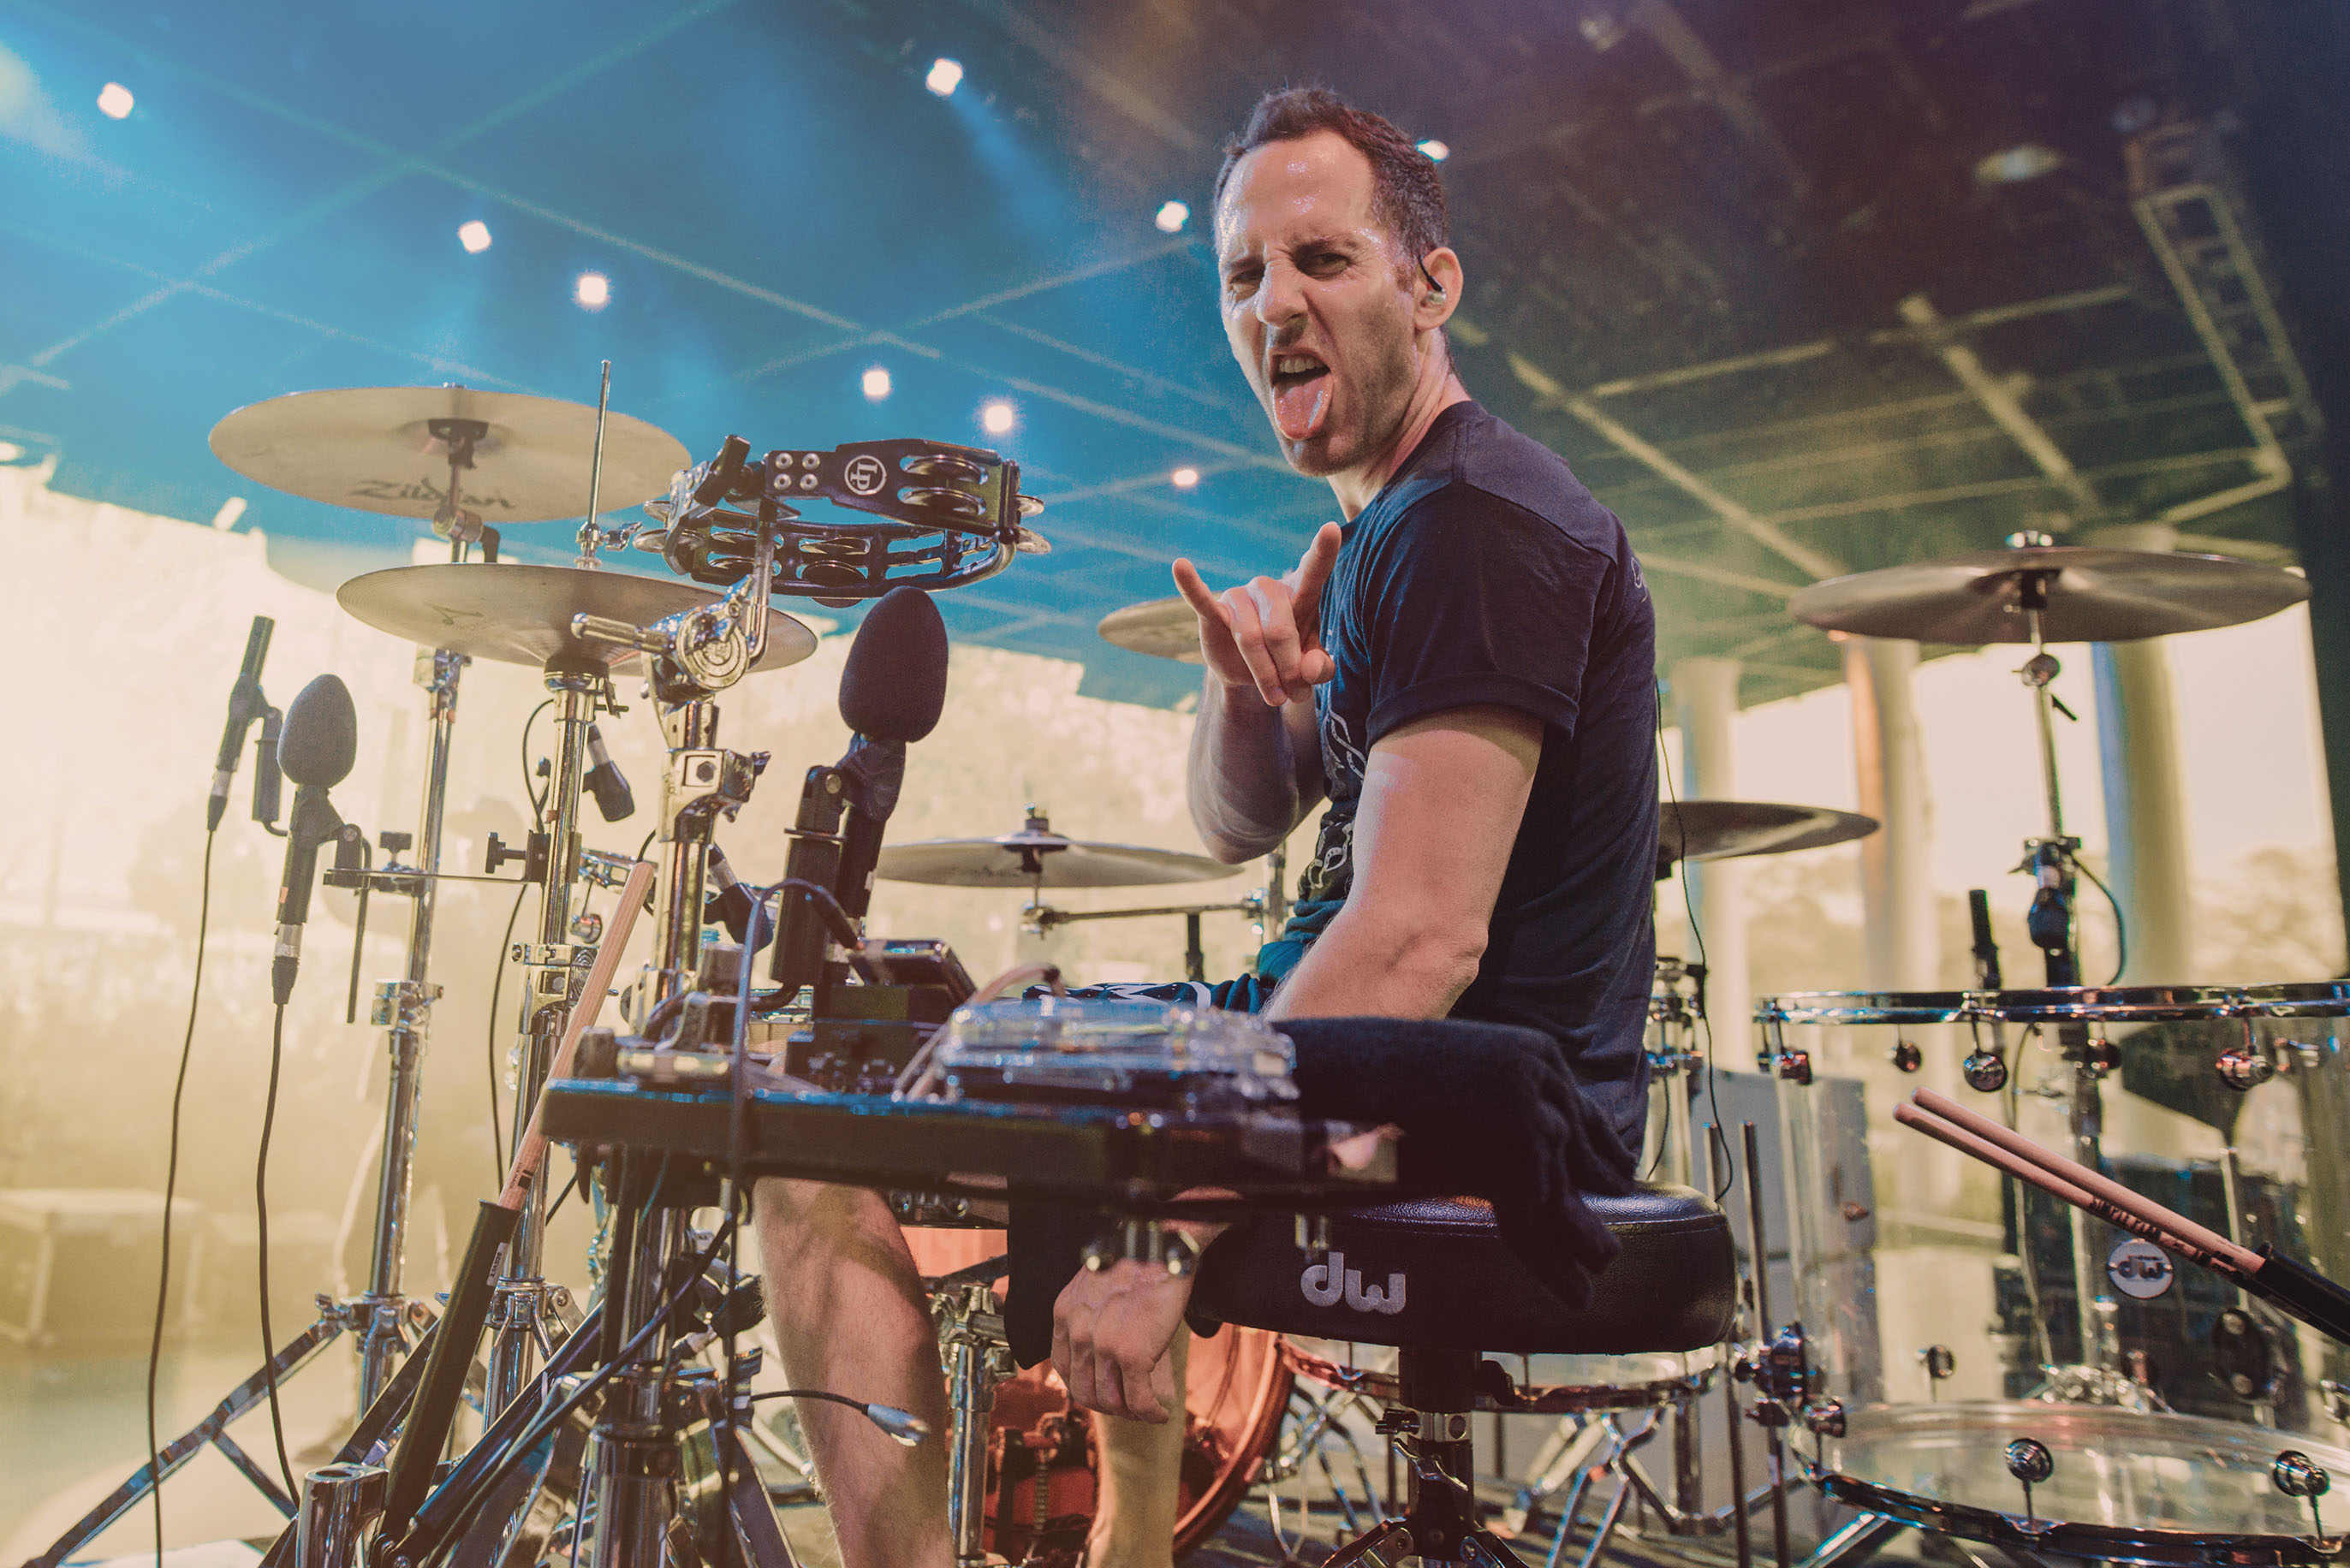 simple plan chuck comeau drummer disney garden rocks band concert rock photo photography image